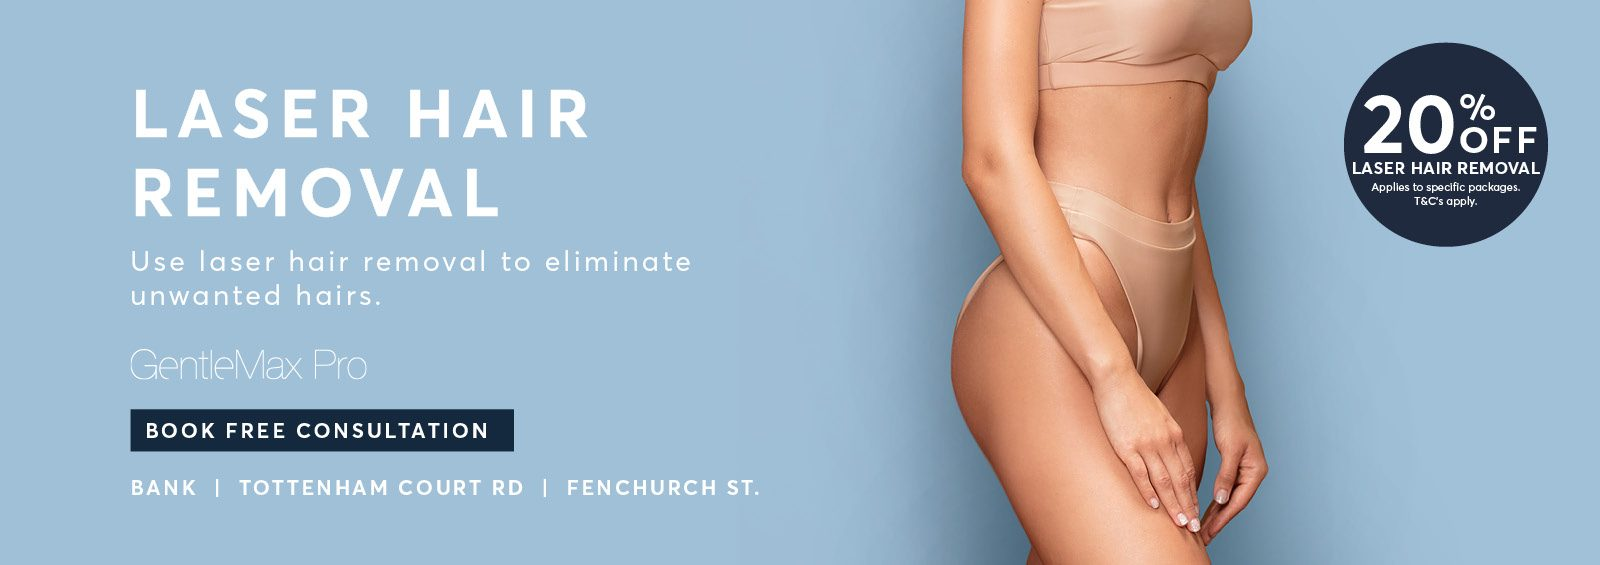 Pulse Light Clinic Laser Hair Removal Near me Offers